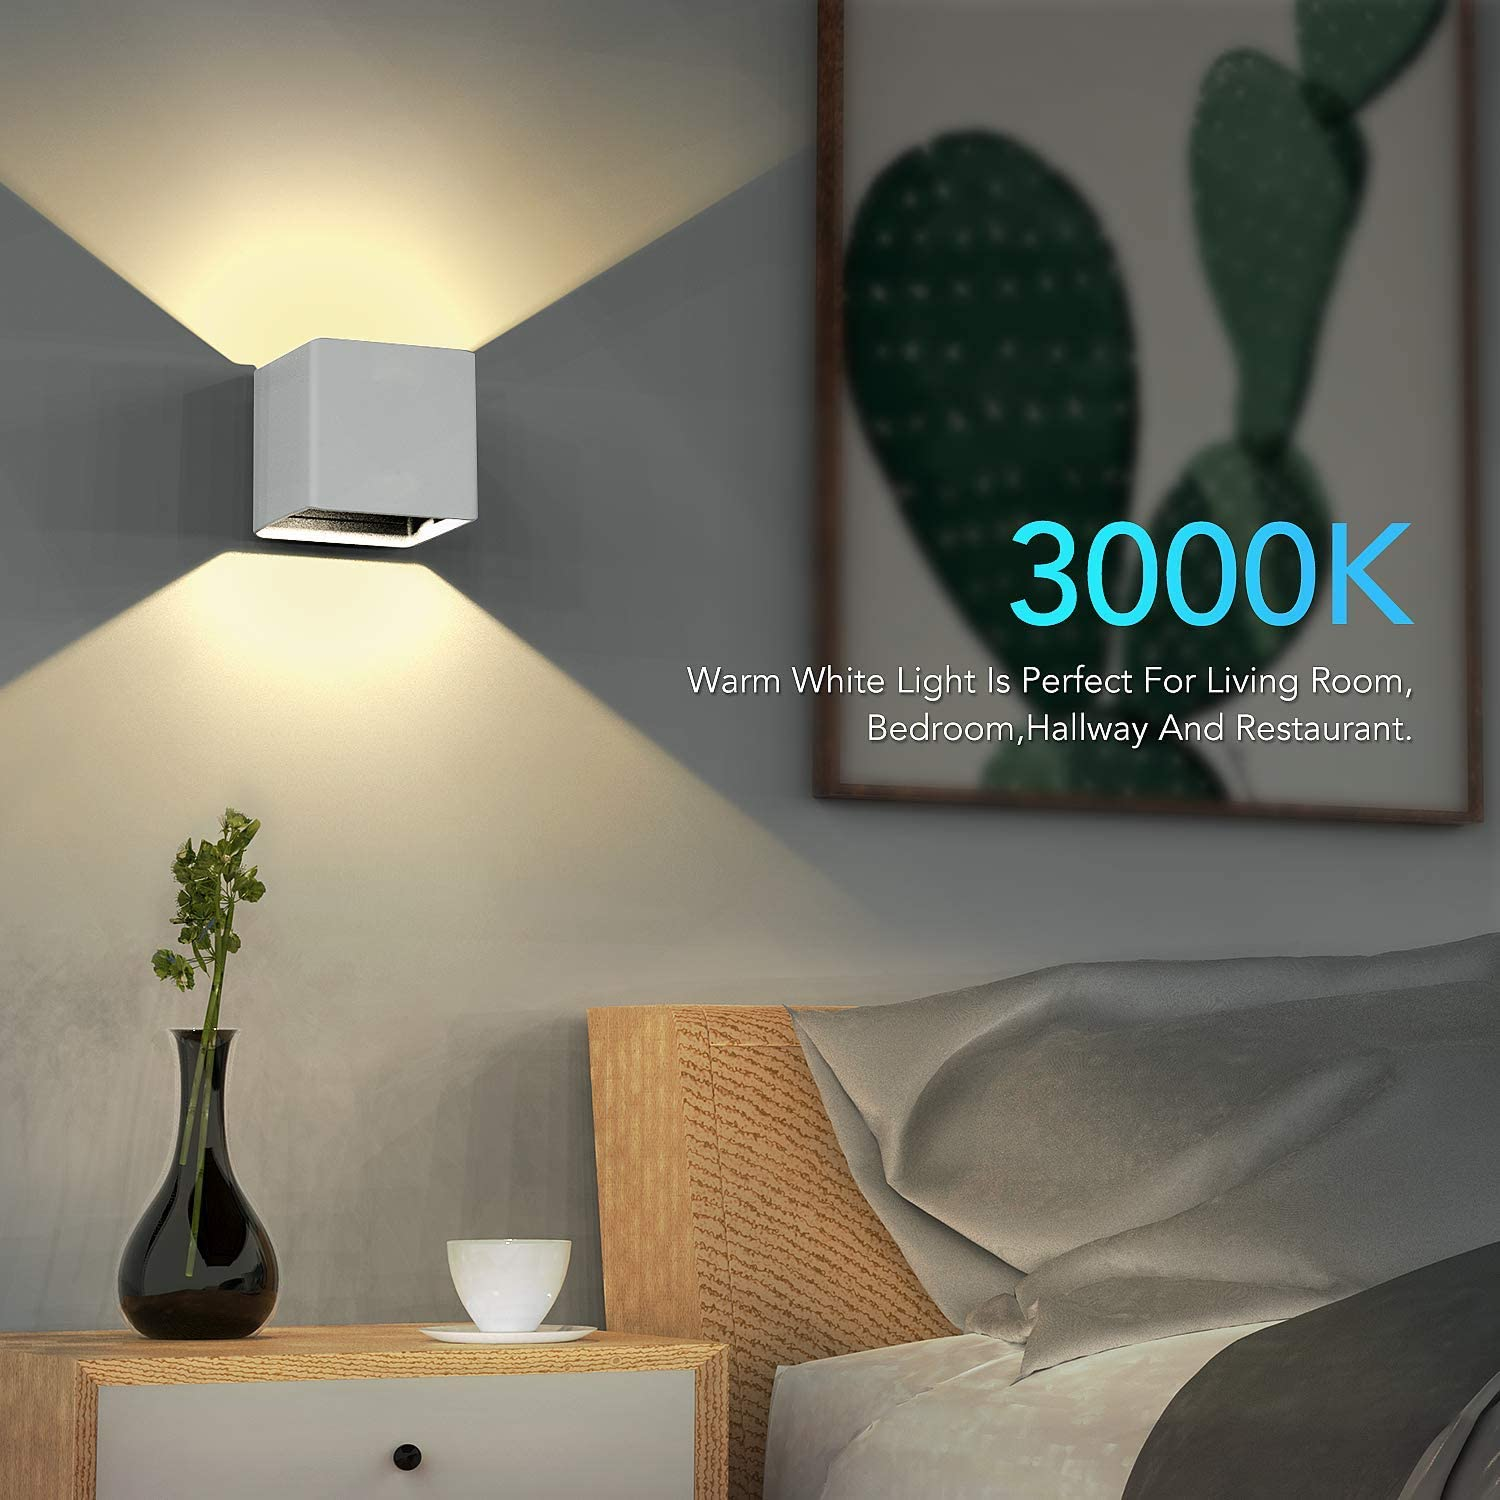 Adjustable Wall Lamp 10W Warm White 3000K Waterproof Lighting Fixtures for Living Room Bedroom Hallway Porch Indoor and Outdoor Black LW06B Hommie LED Wall Sconces